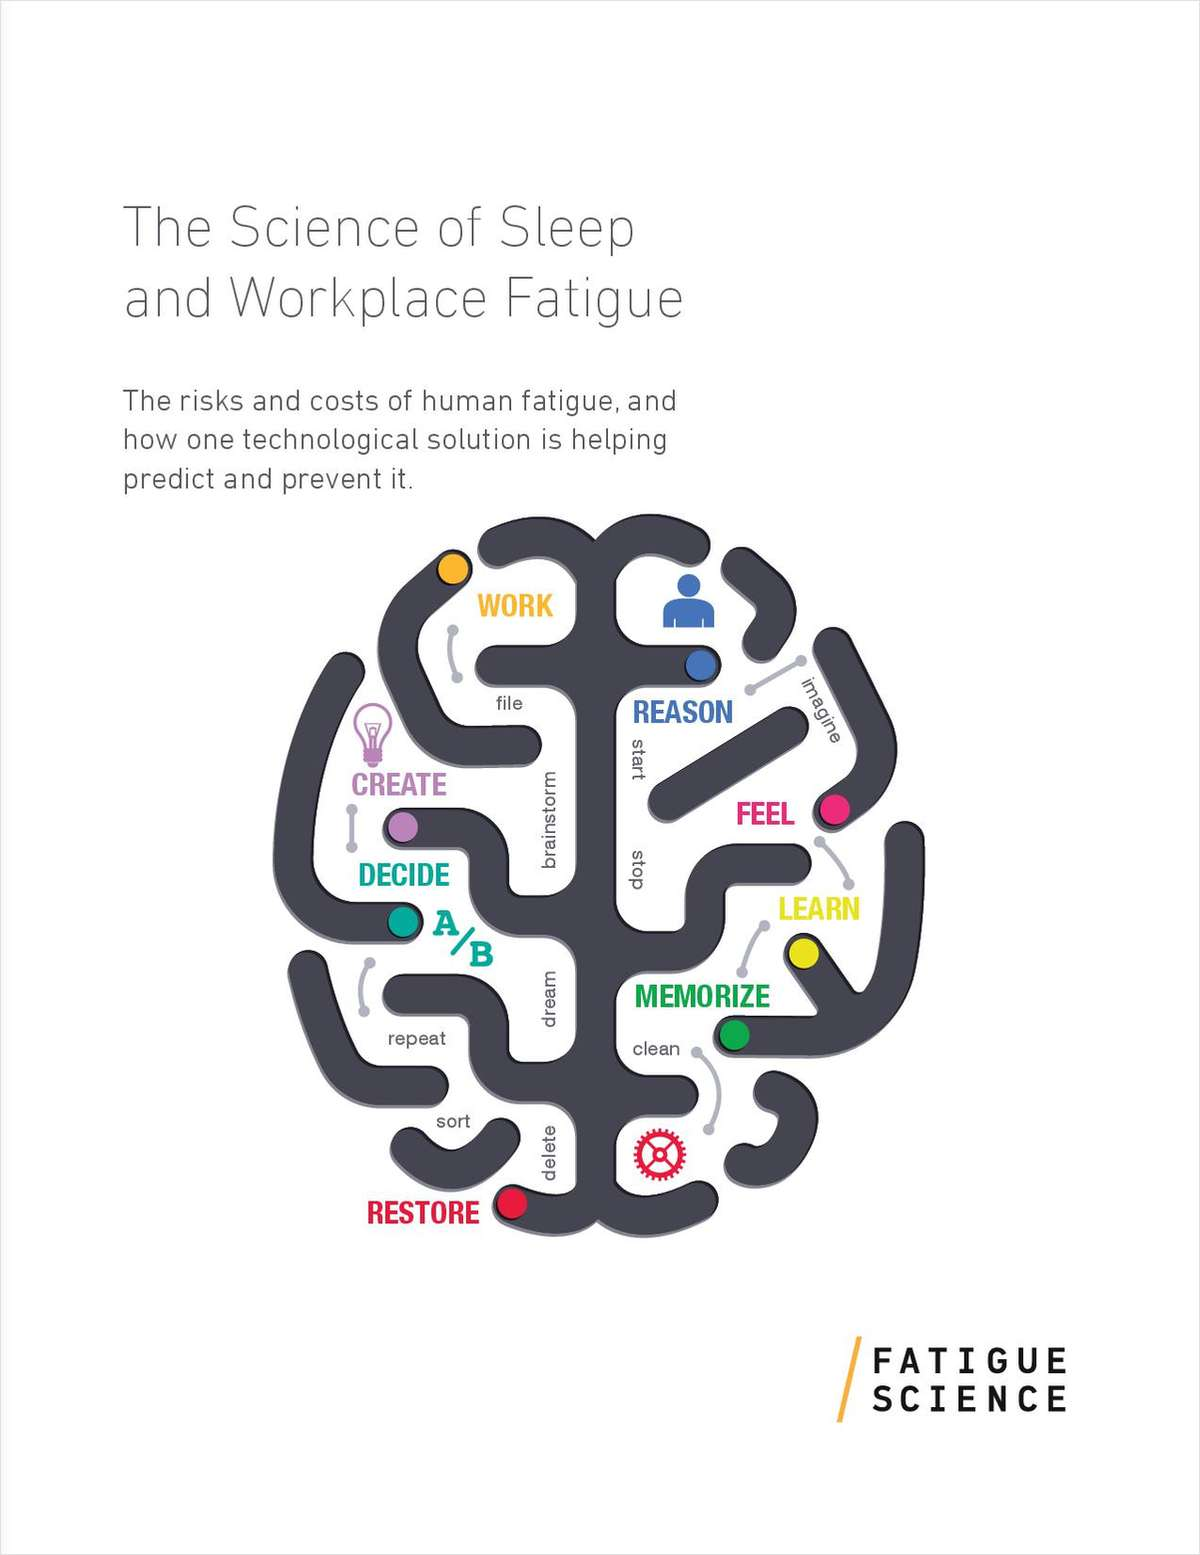 The Science of Sleep and Workplace Fatigue